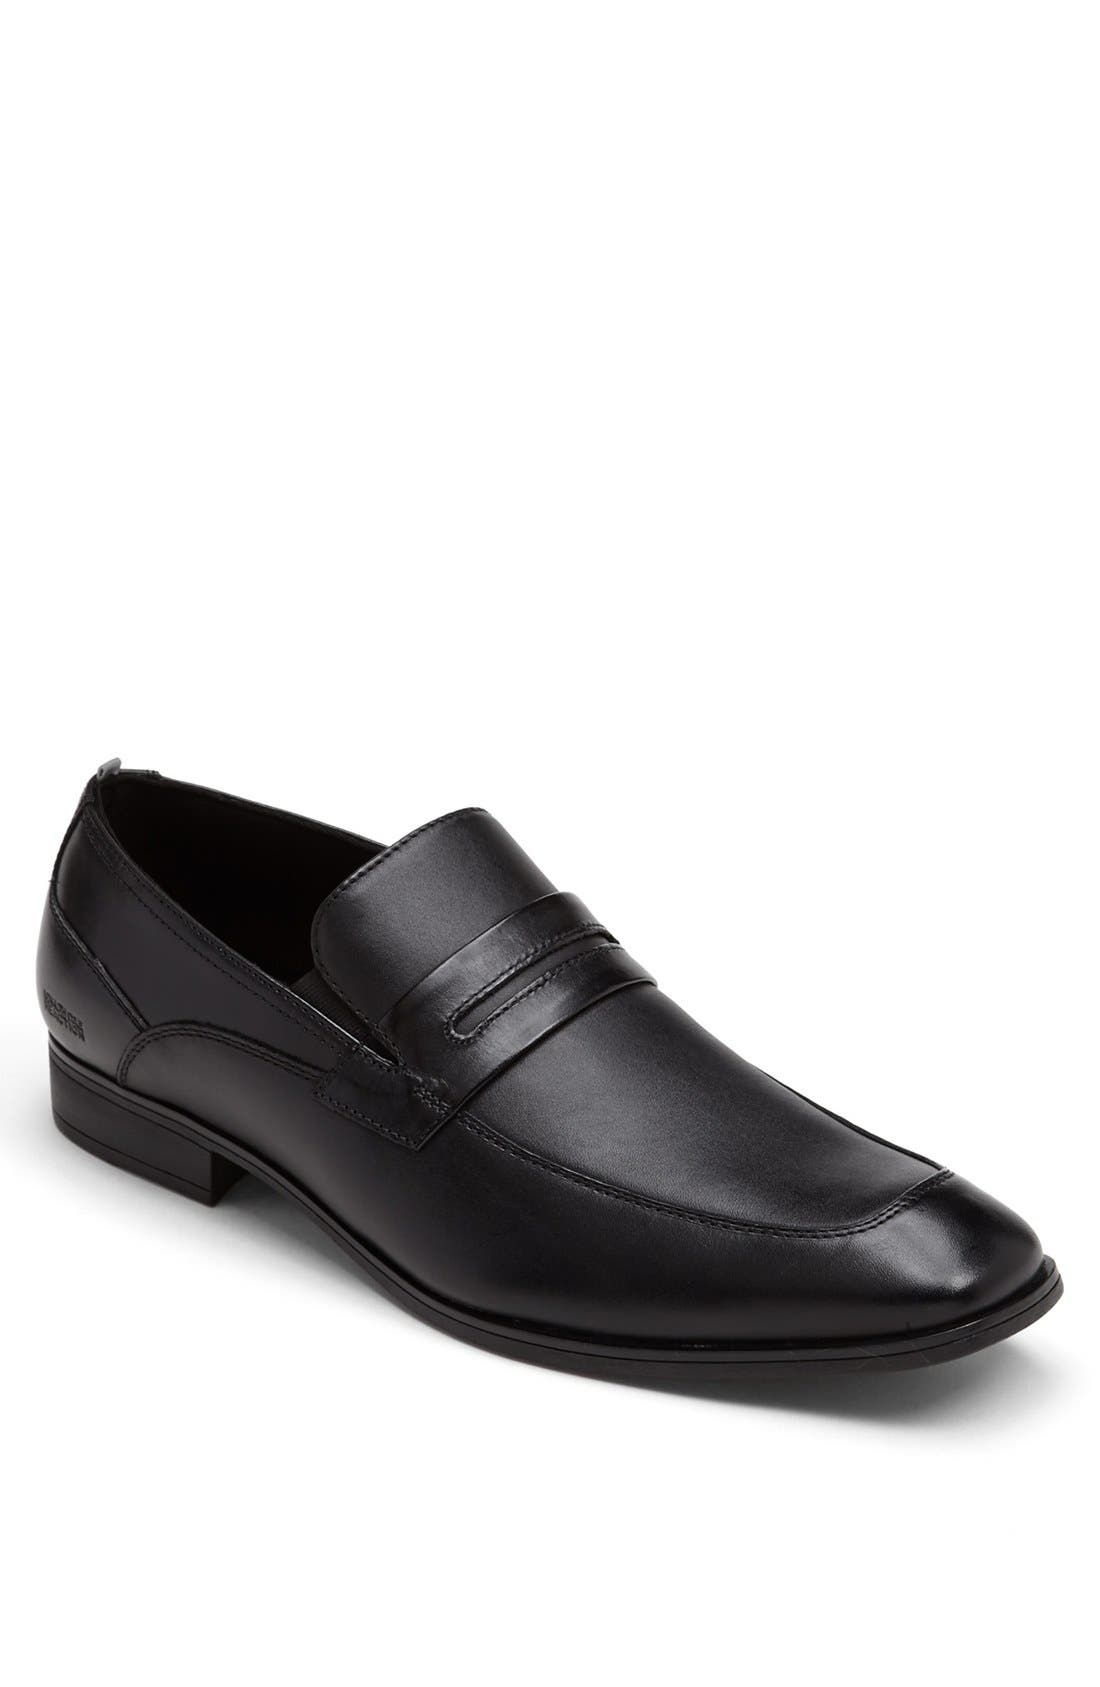 Main Image - Kenneth Cole Reaction 'Ghost Town' Penny Loafer